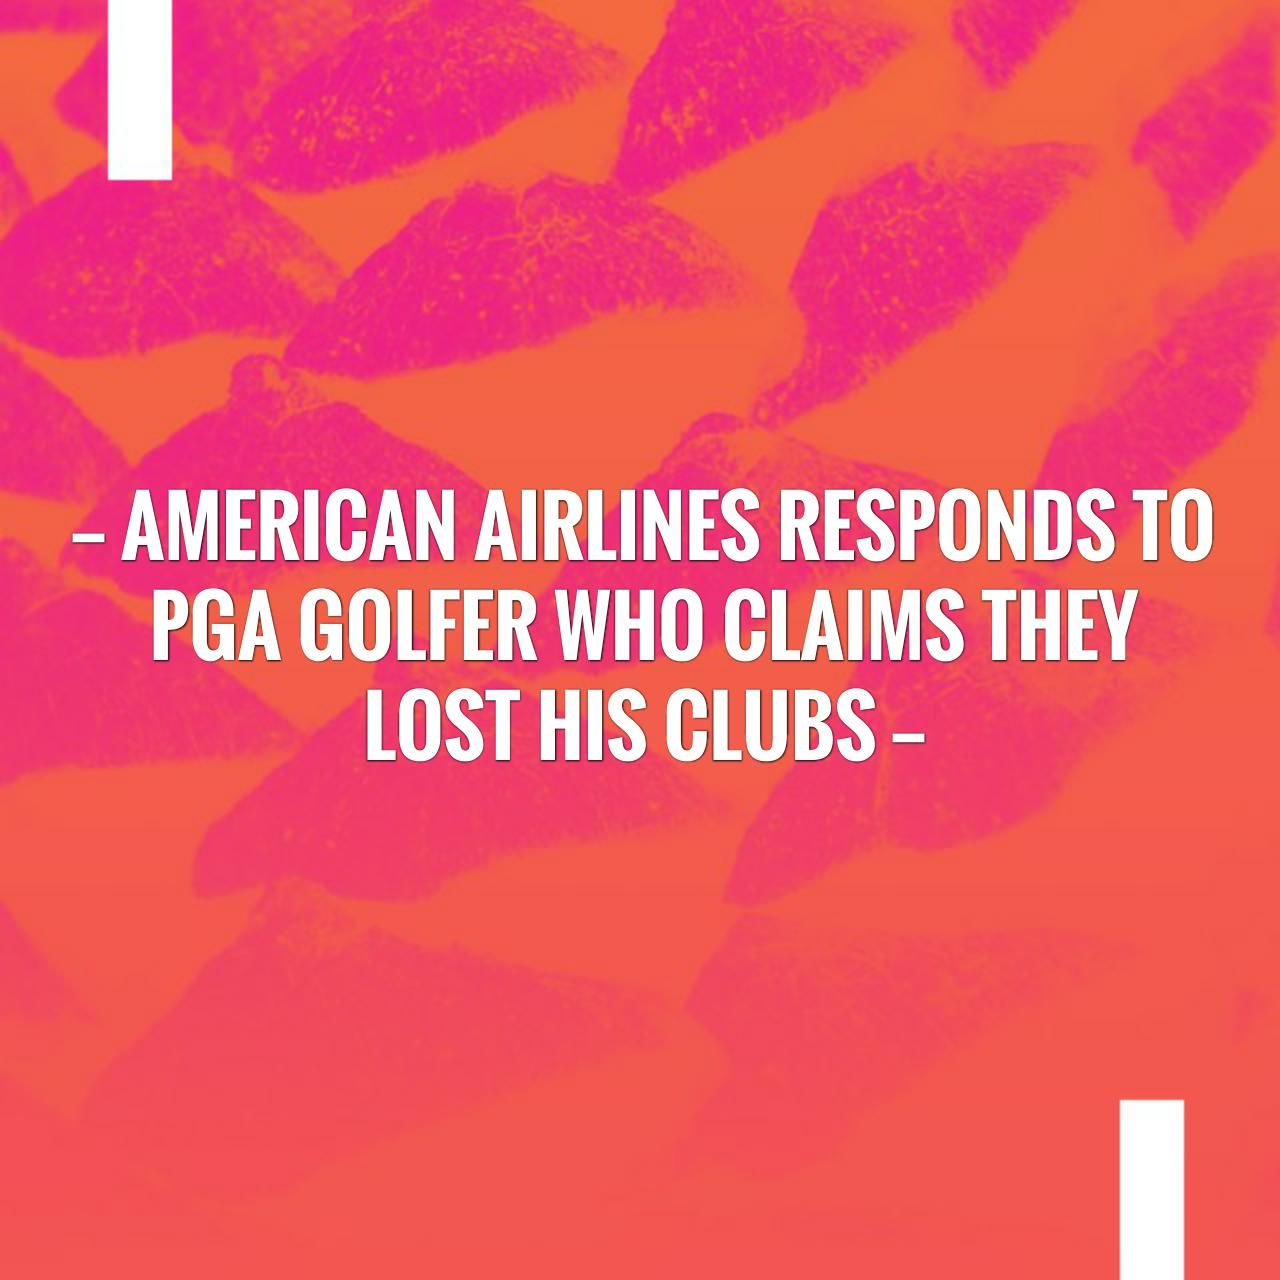 American Airlines responds to PGA golfer who claims they